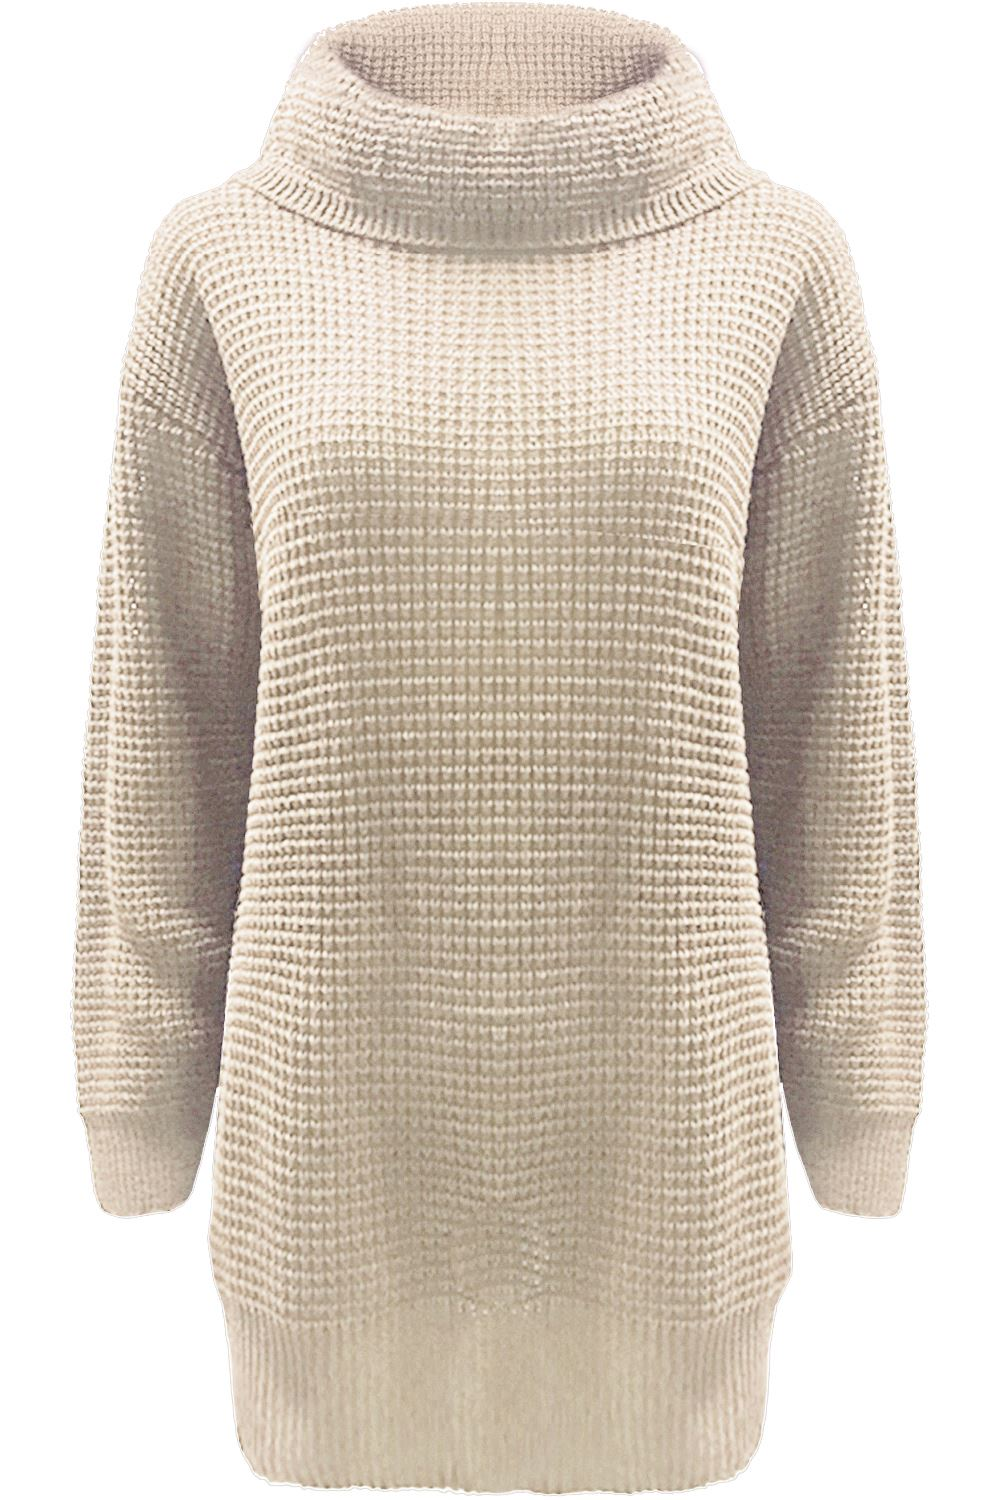 knitted jumpers womens-dress-ladies-baggy-jumper-long-sleeve-cowl- kueoqex